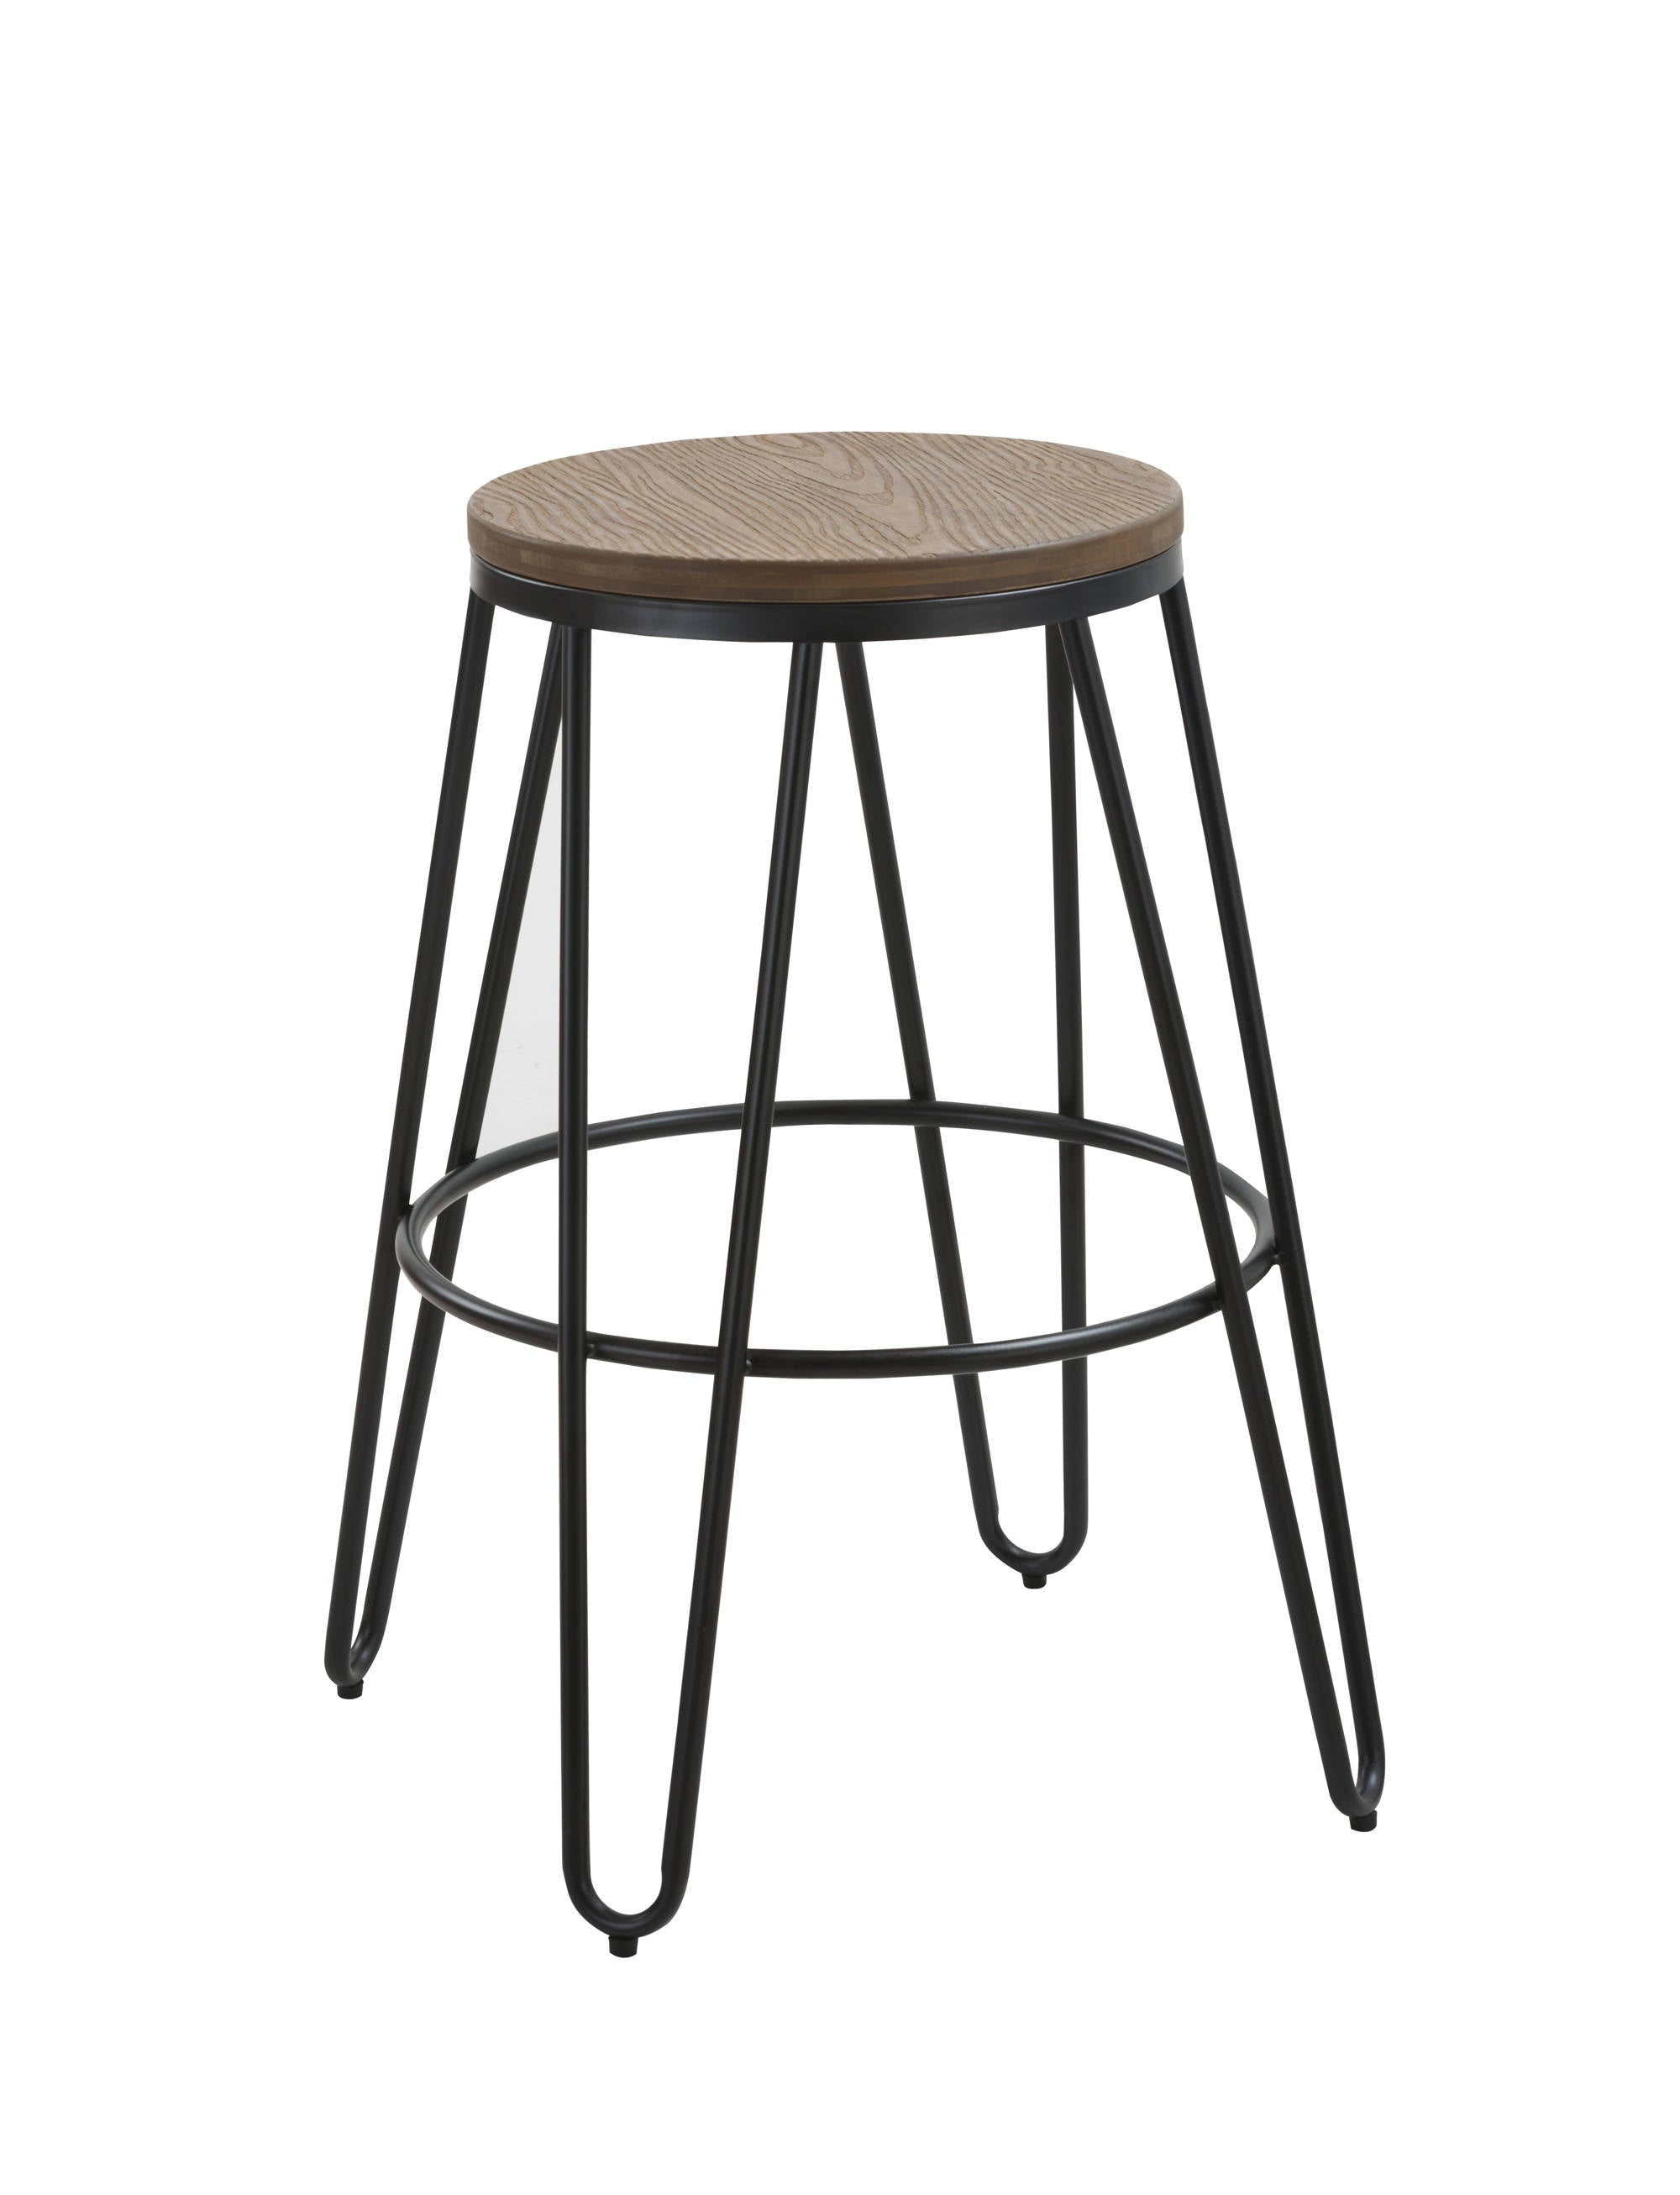 Symbol Stool with Black Legs - Ezzo